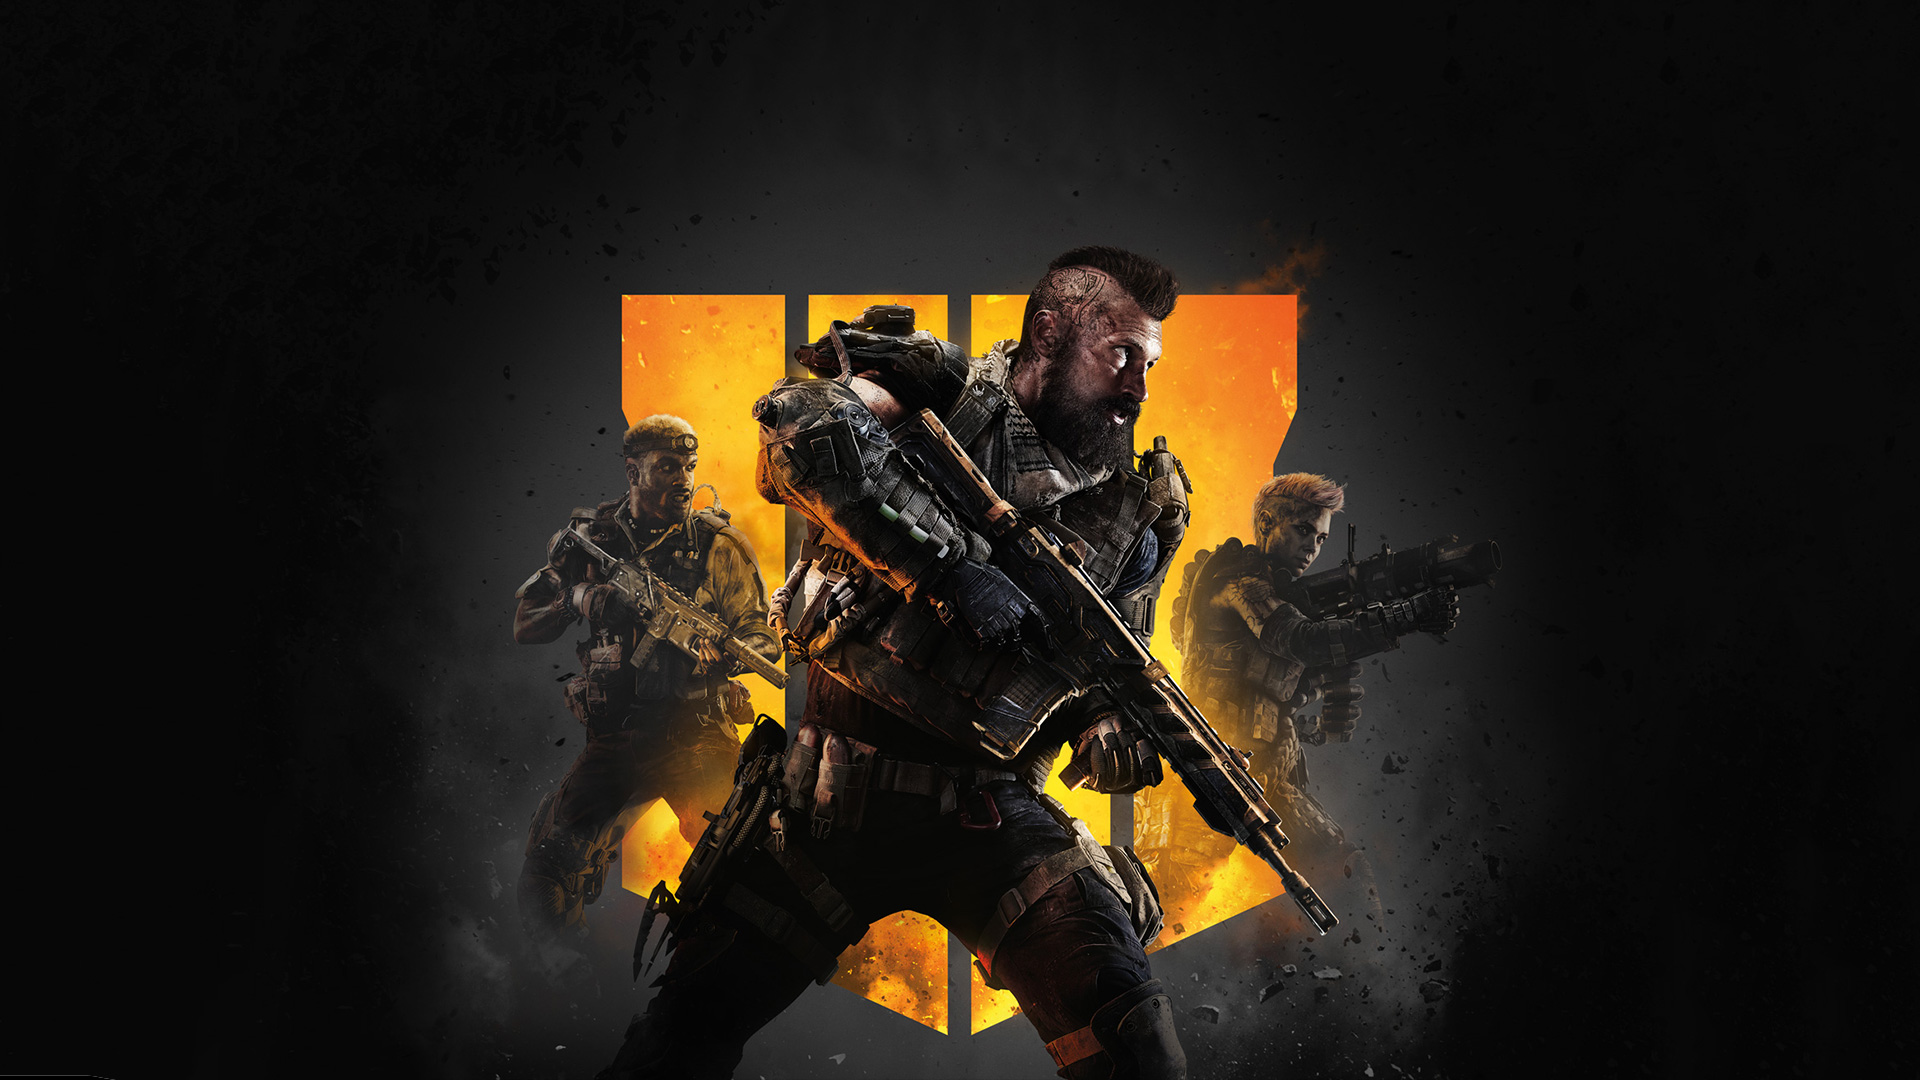 What is Call of Duty: Black Ops 4?